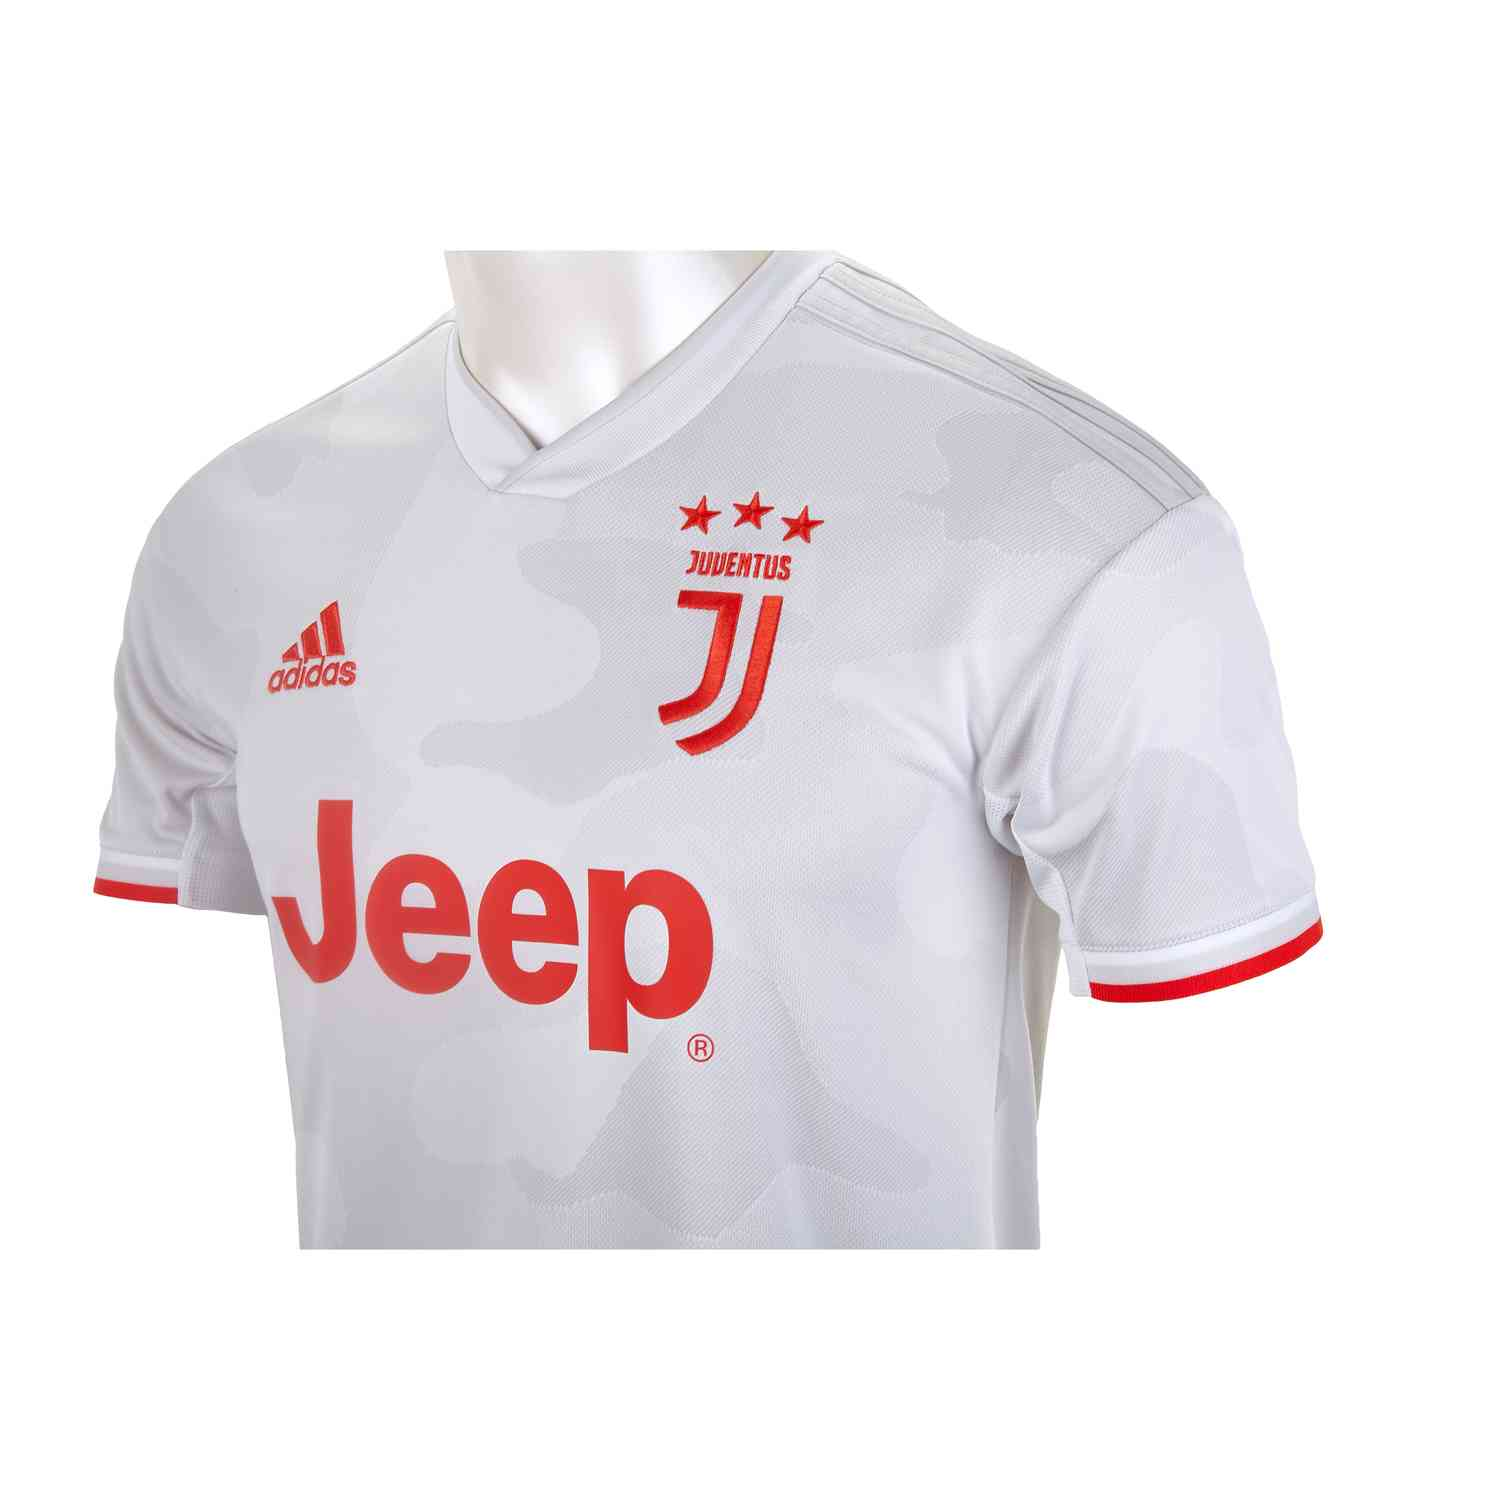 uk availability 25d23 d8631 2019/20 Kids adidas Juventus Away Jersey - Soccer Master